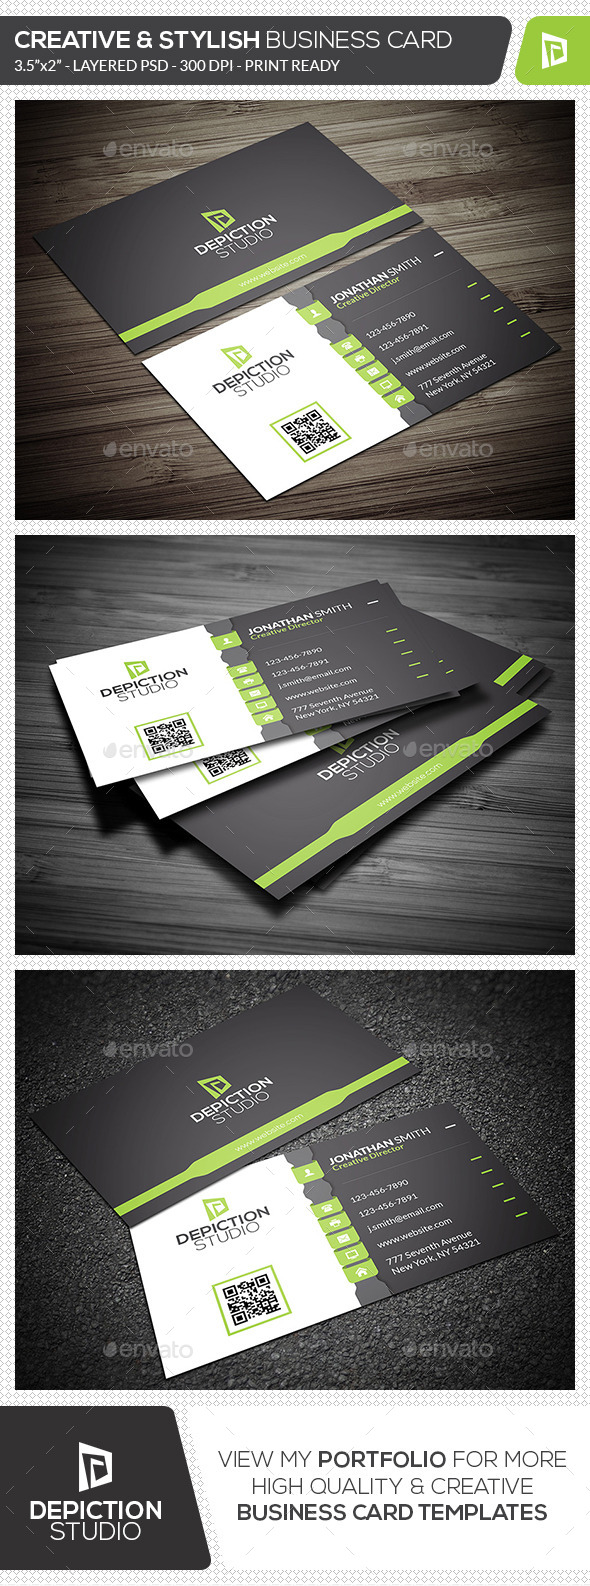 GraphicRiver Creative & Stylish Business Card 11830012